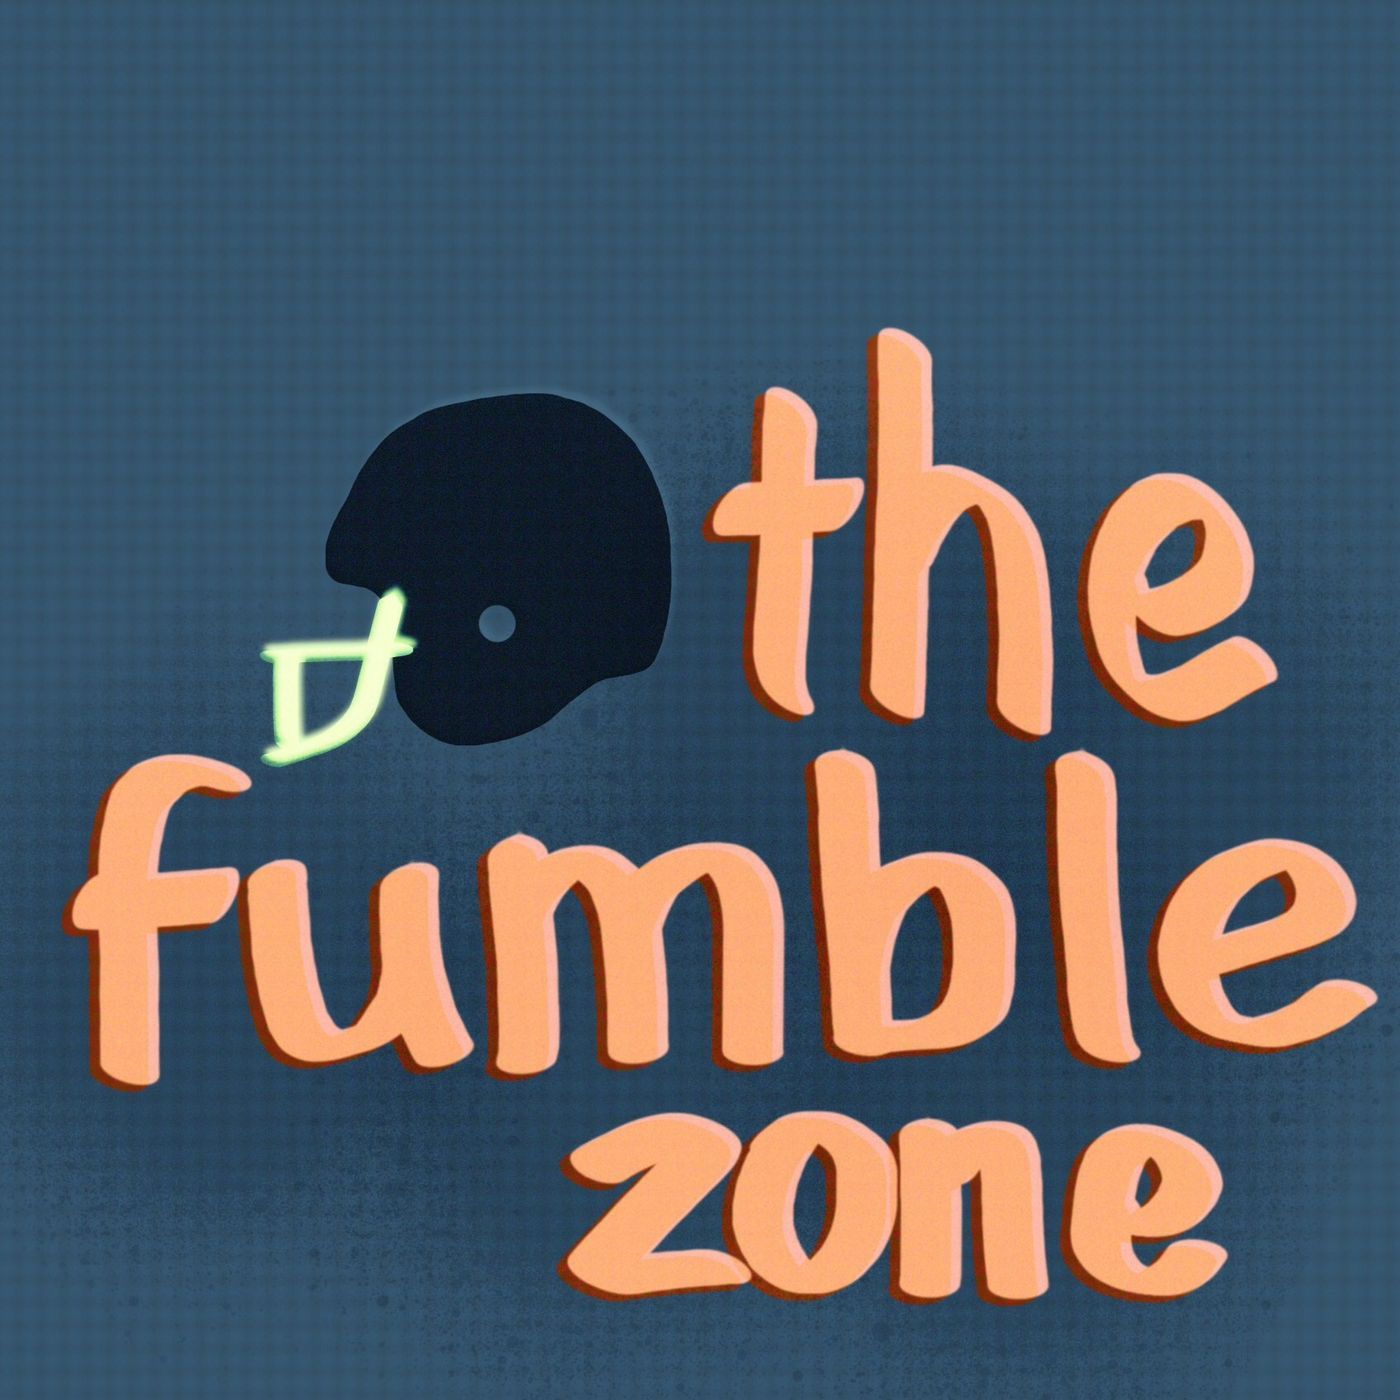 The Fumble Zone